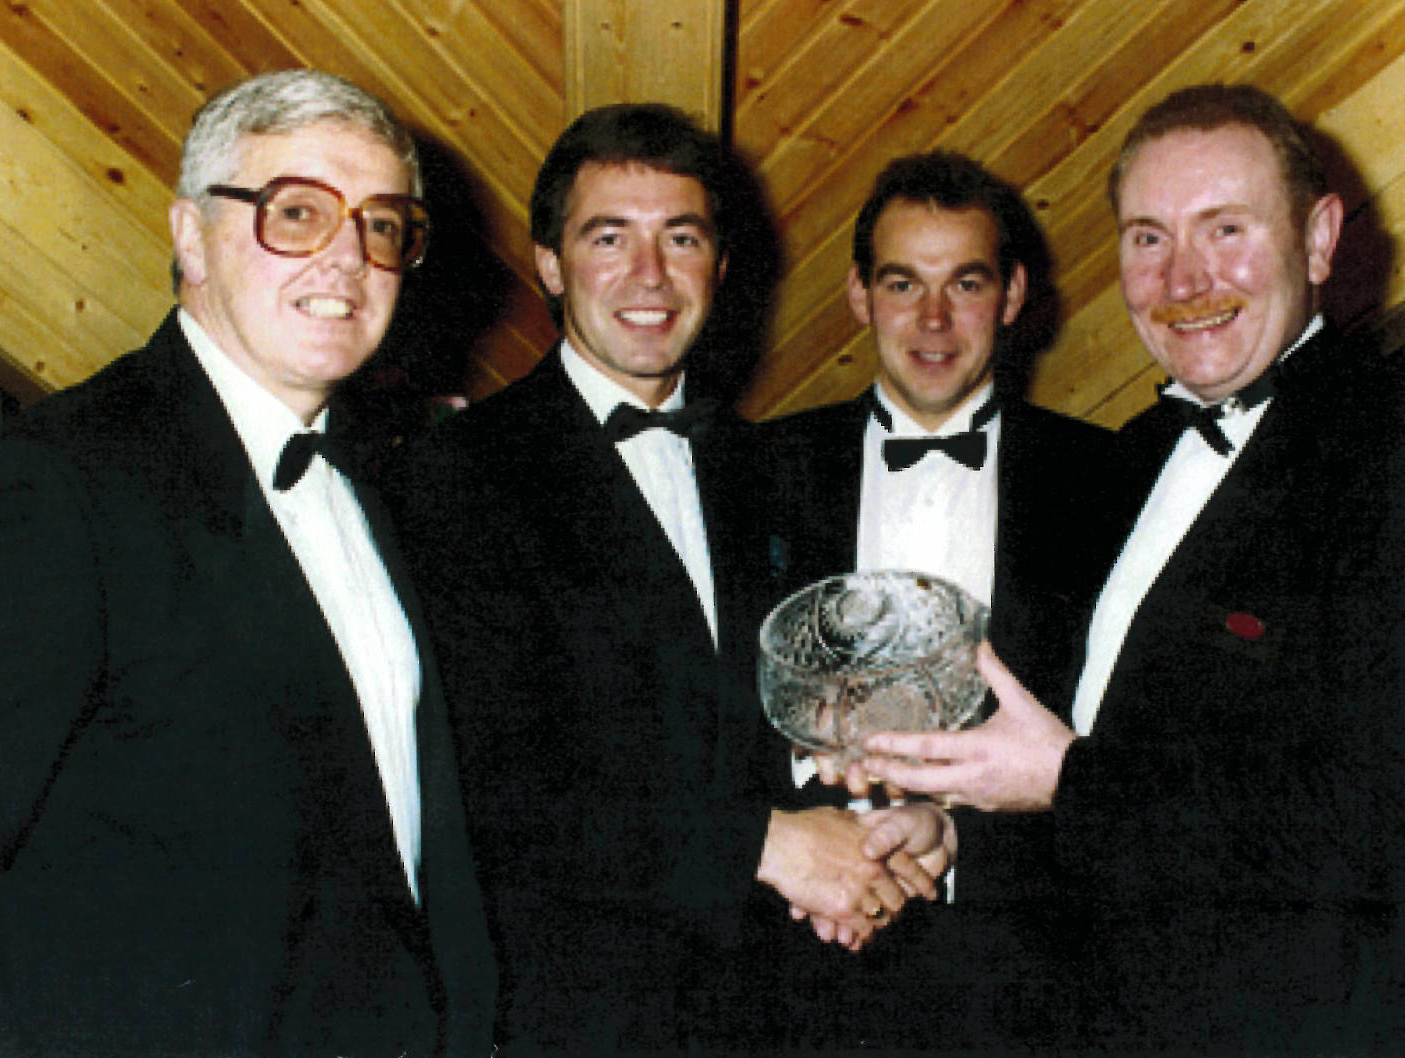 Clerkin (second from left), with John Lavery (far left),  honoring Stephen  McComb (far right) on the occasion of the opening of his new hotel in Belfast, c. 1990.